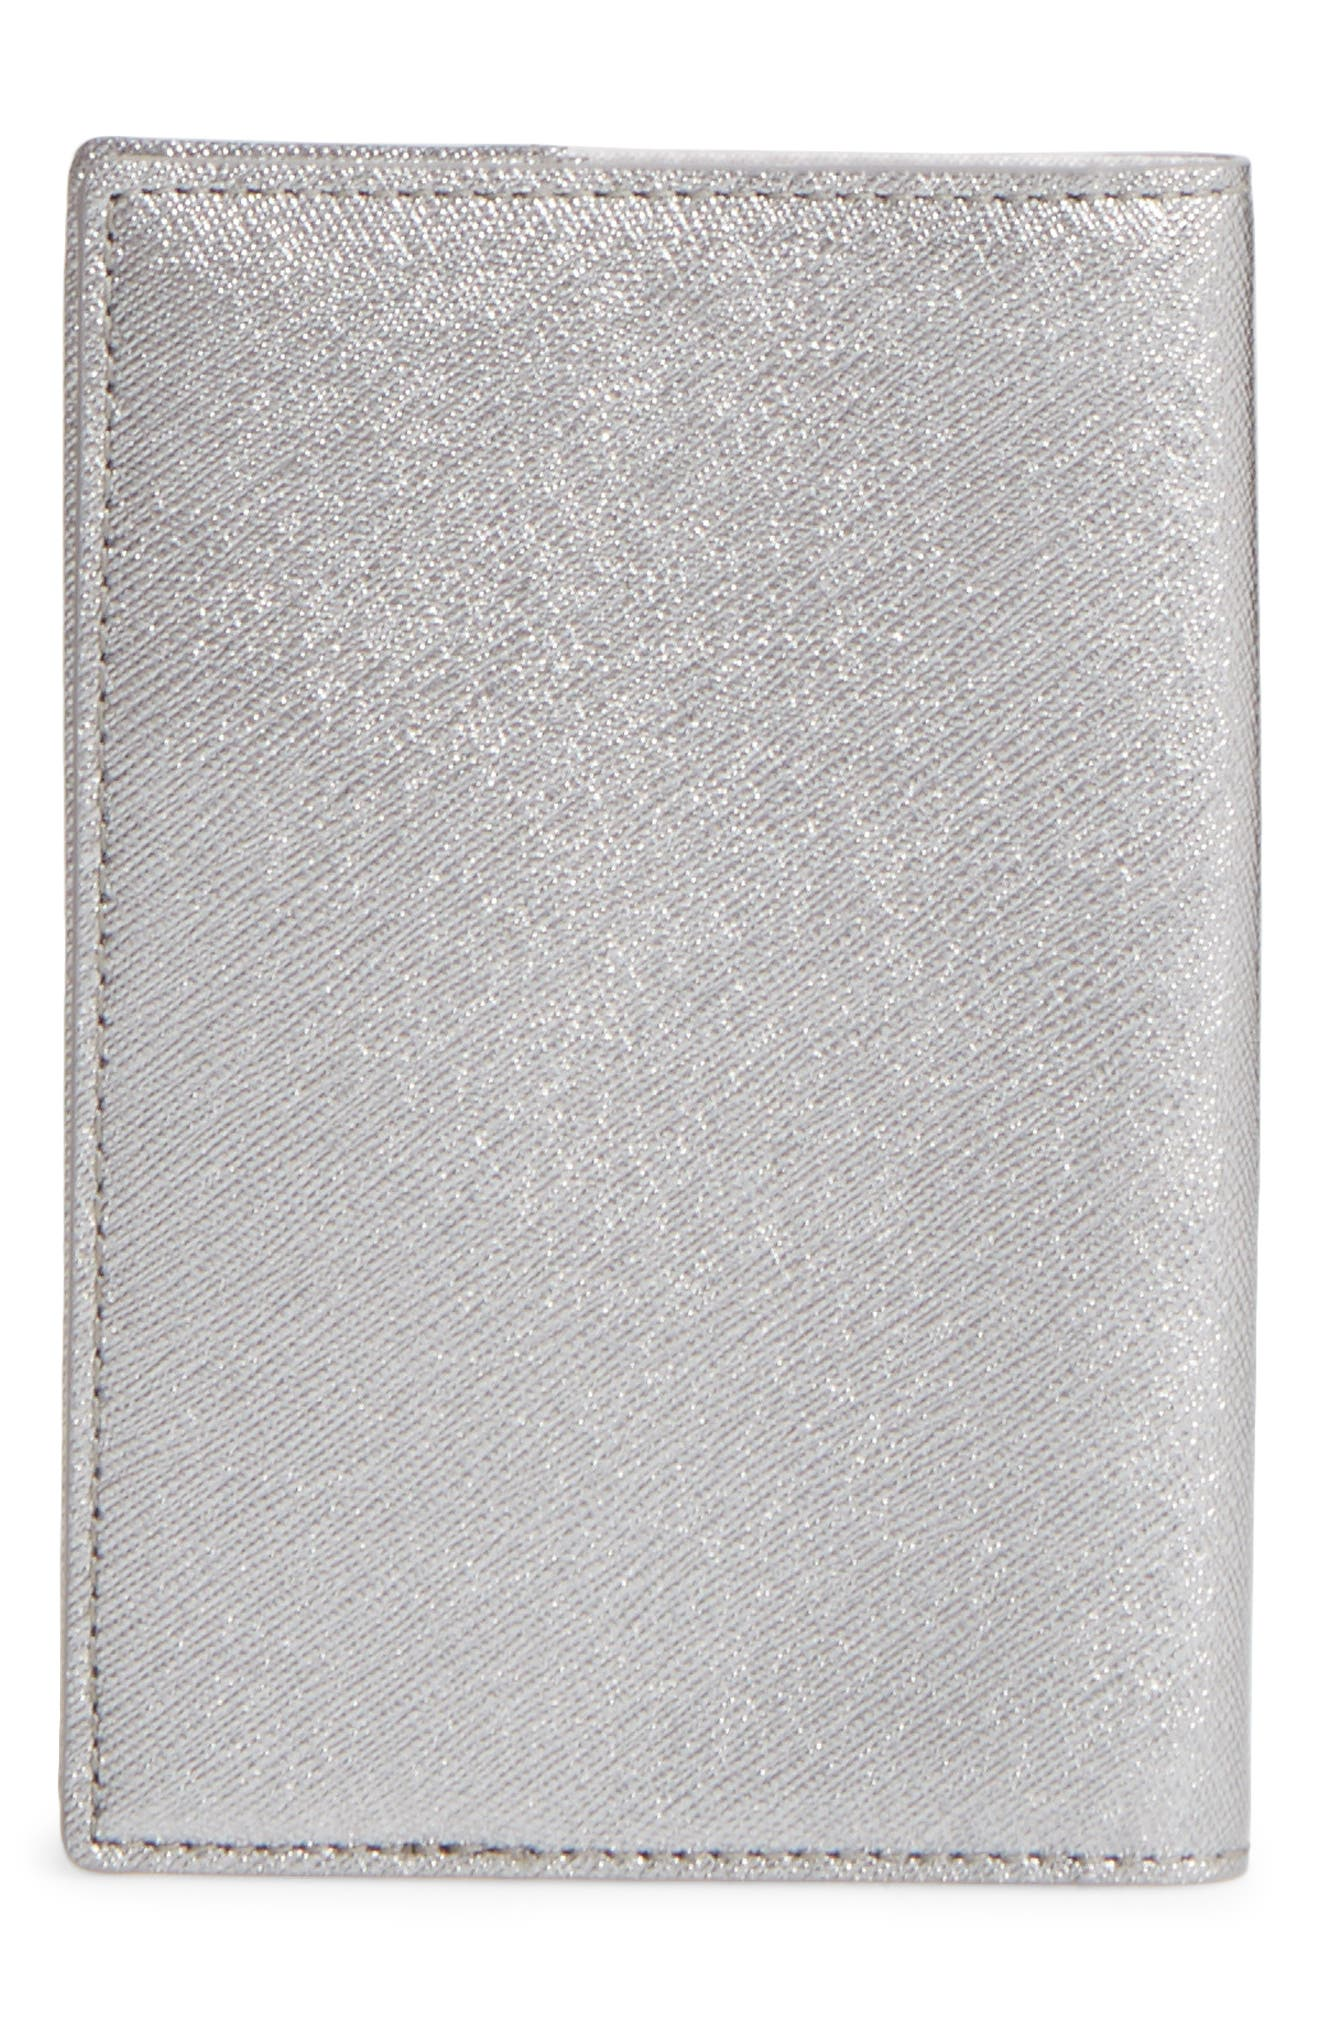 starbright owl leather passport case,                             Alternate thumbnail 4, color,                             040